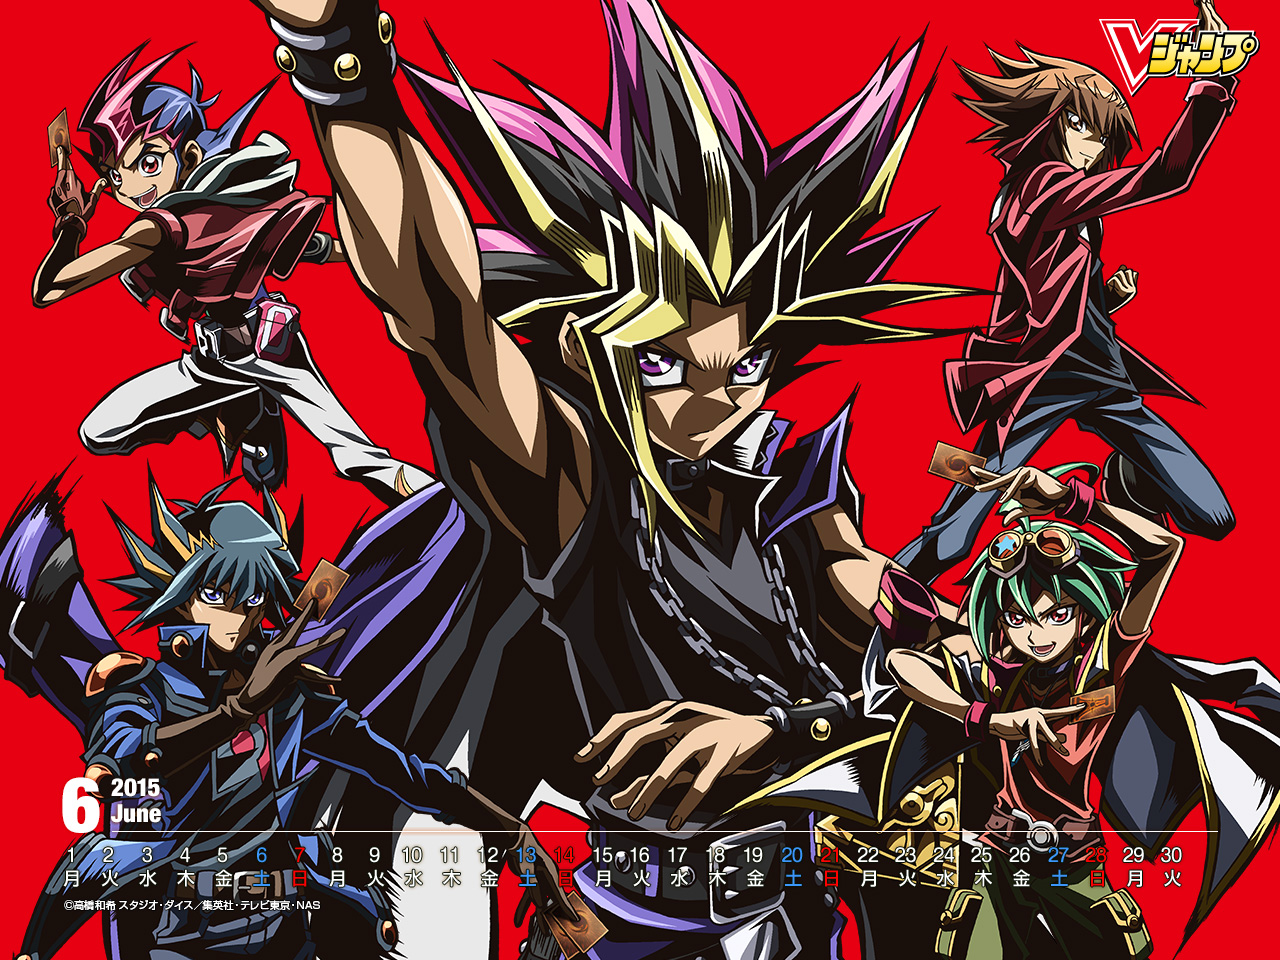 Yu gi oh arc v wallpaper zerochan anime image board download yu gi oh image voltagebd Gallery